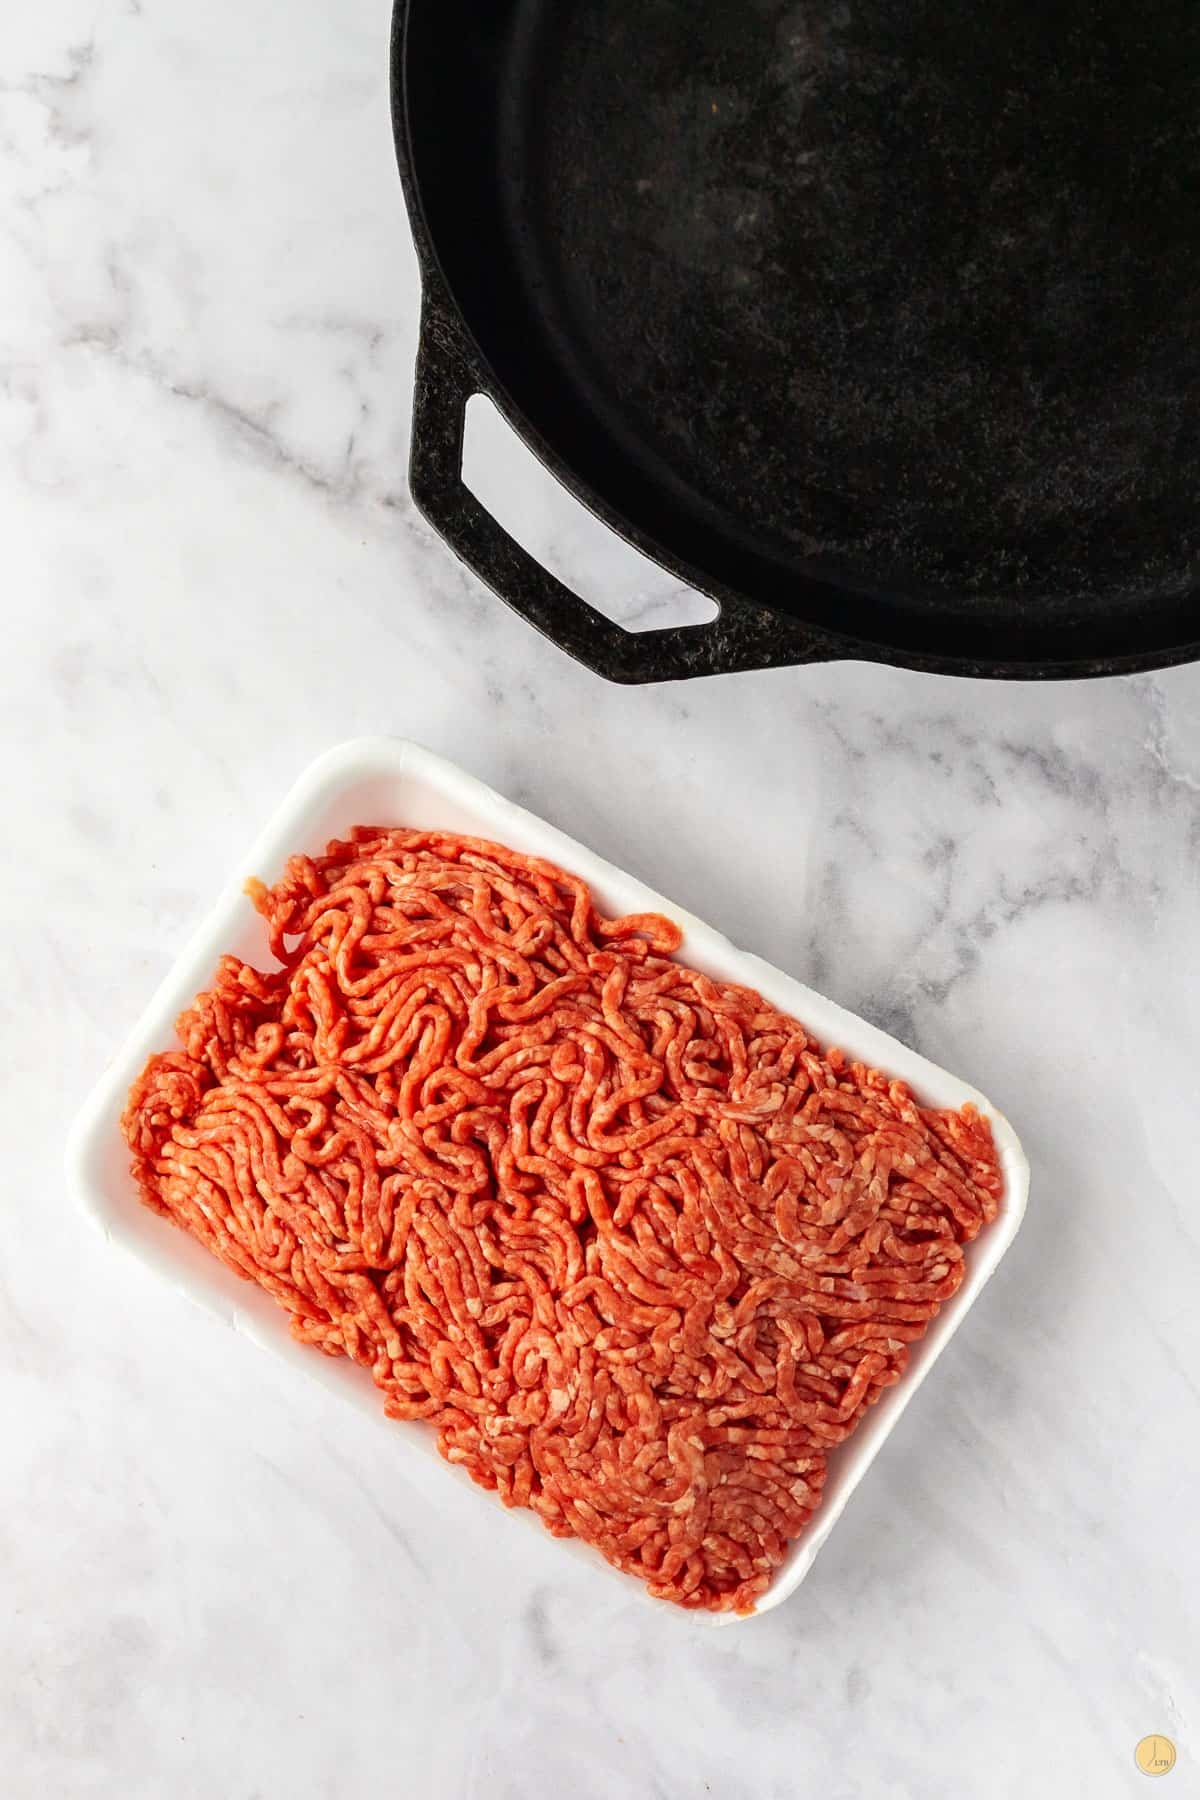 uncooked ground beef and a skillet